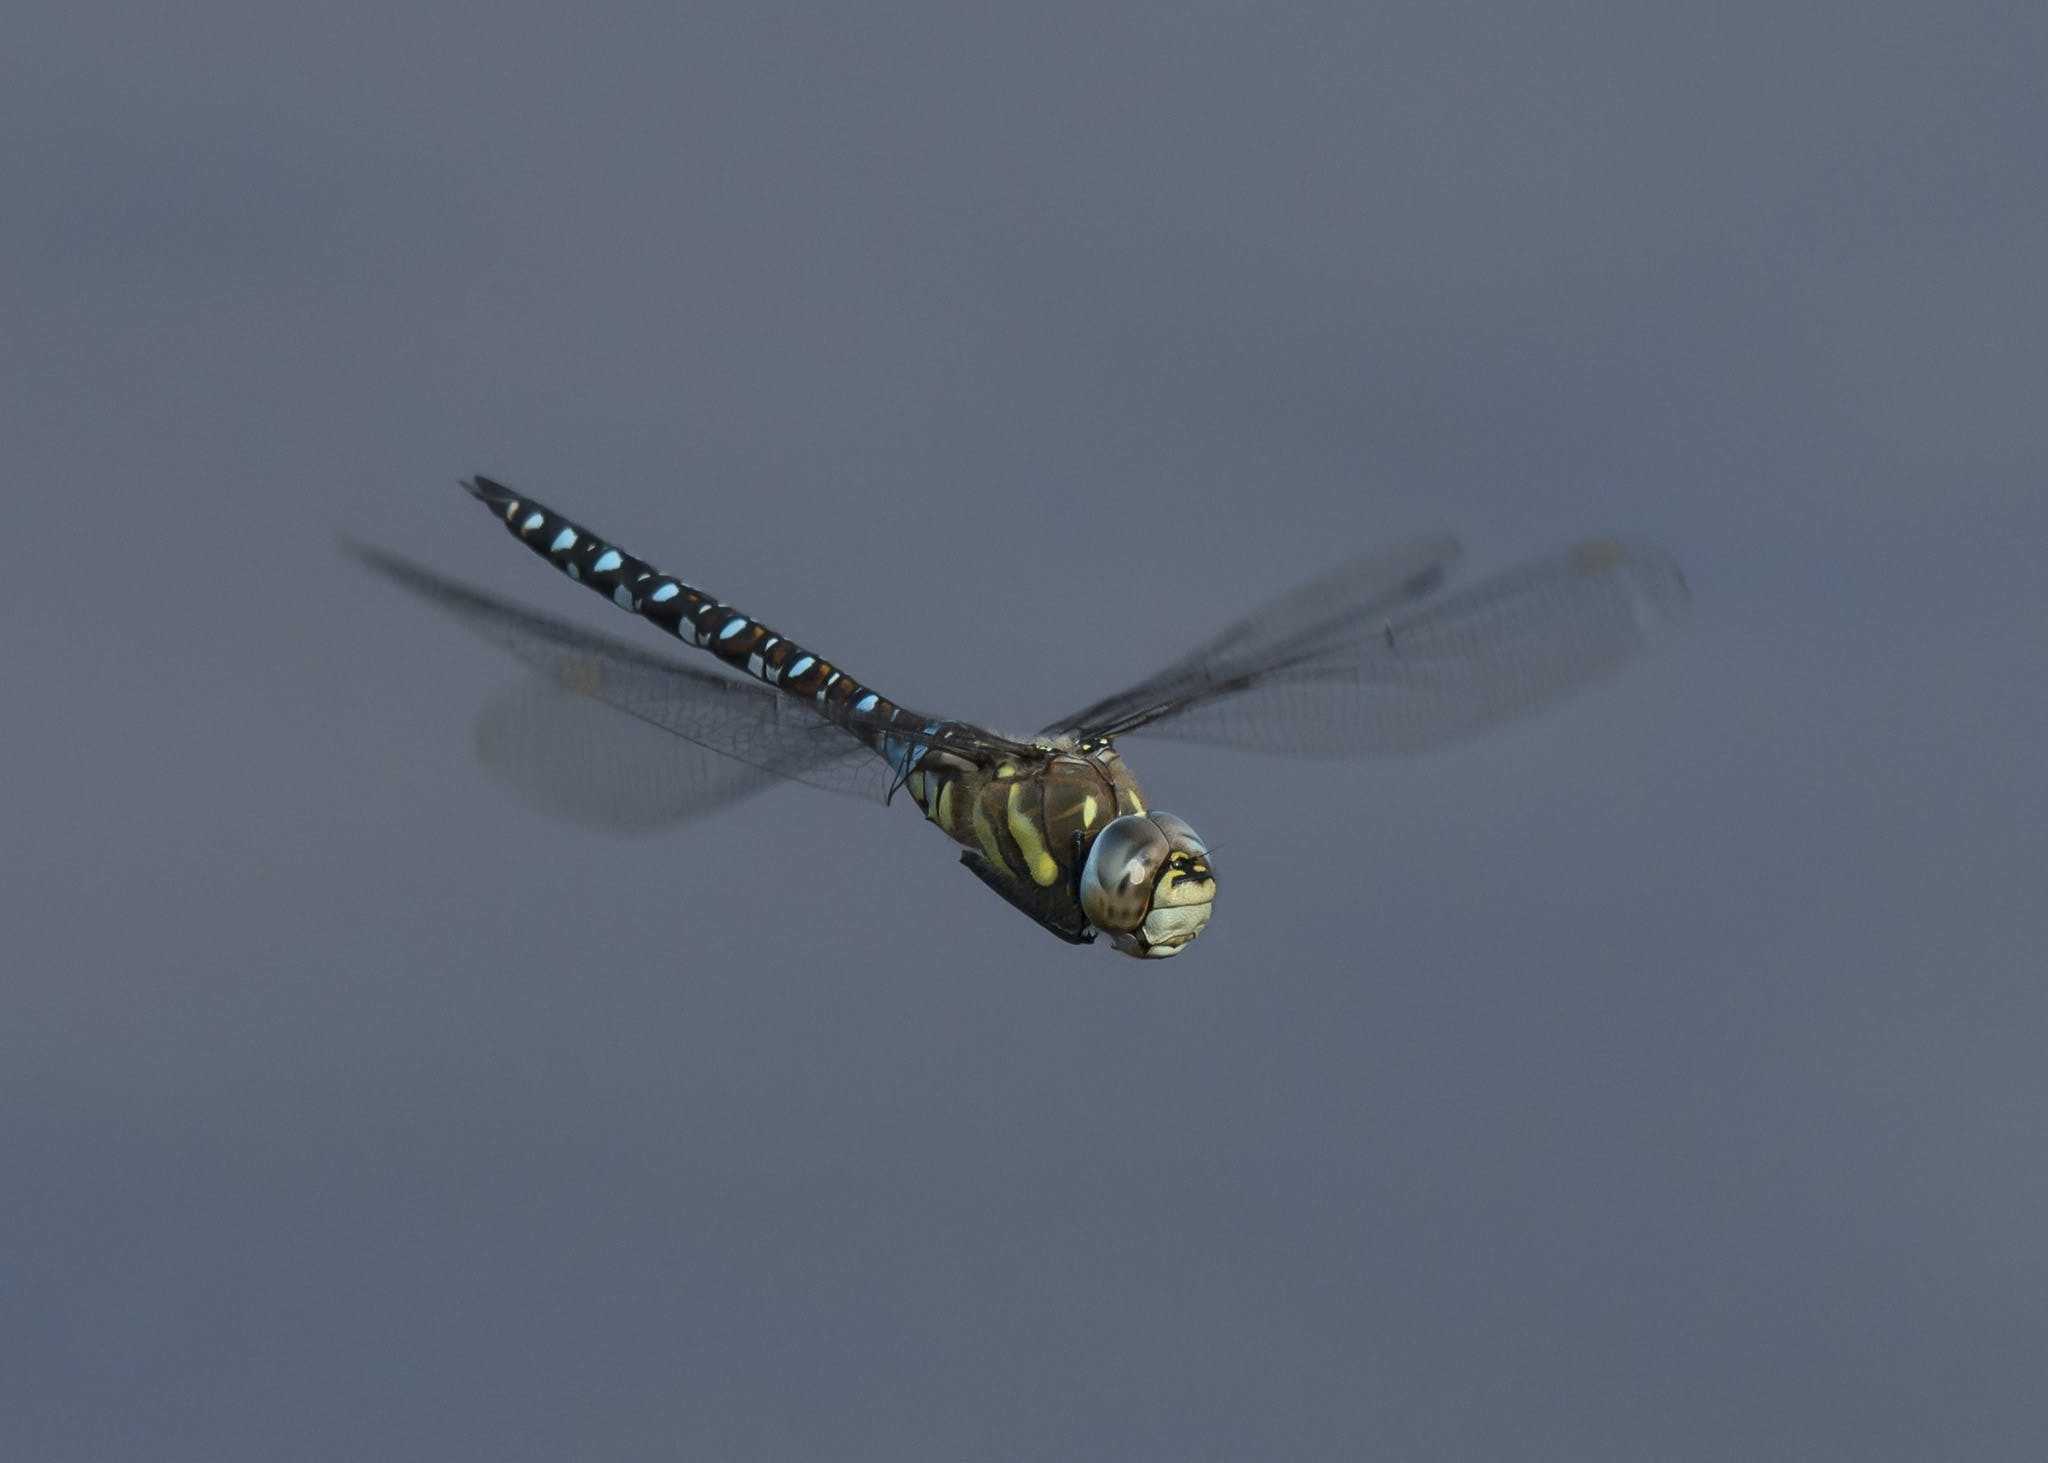 Free stock photo of dragonfly, flying, wings